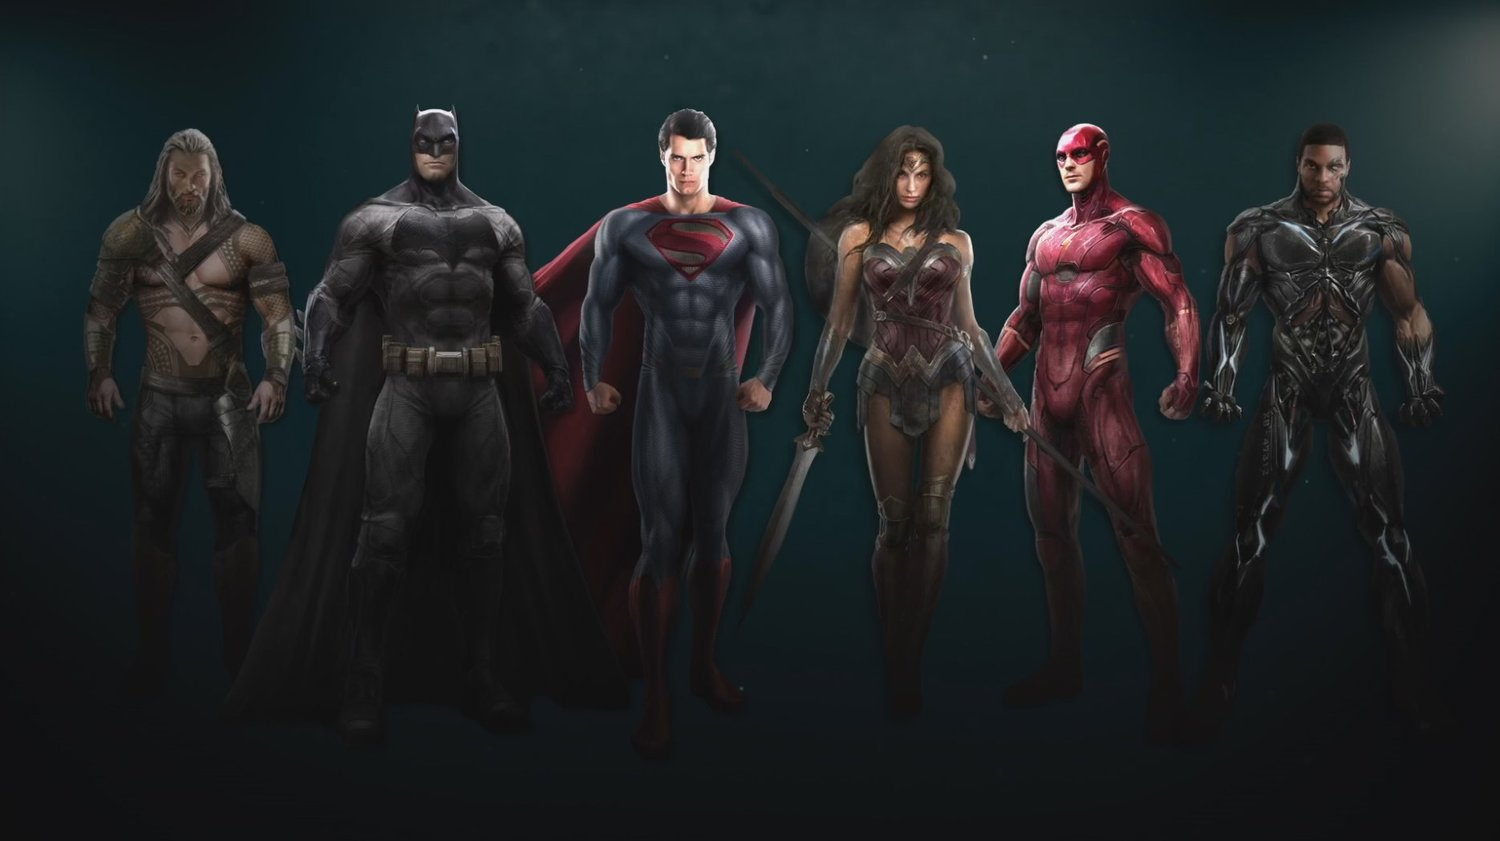 Justice League Movie Concept Art